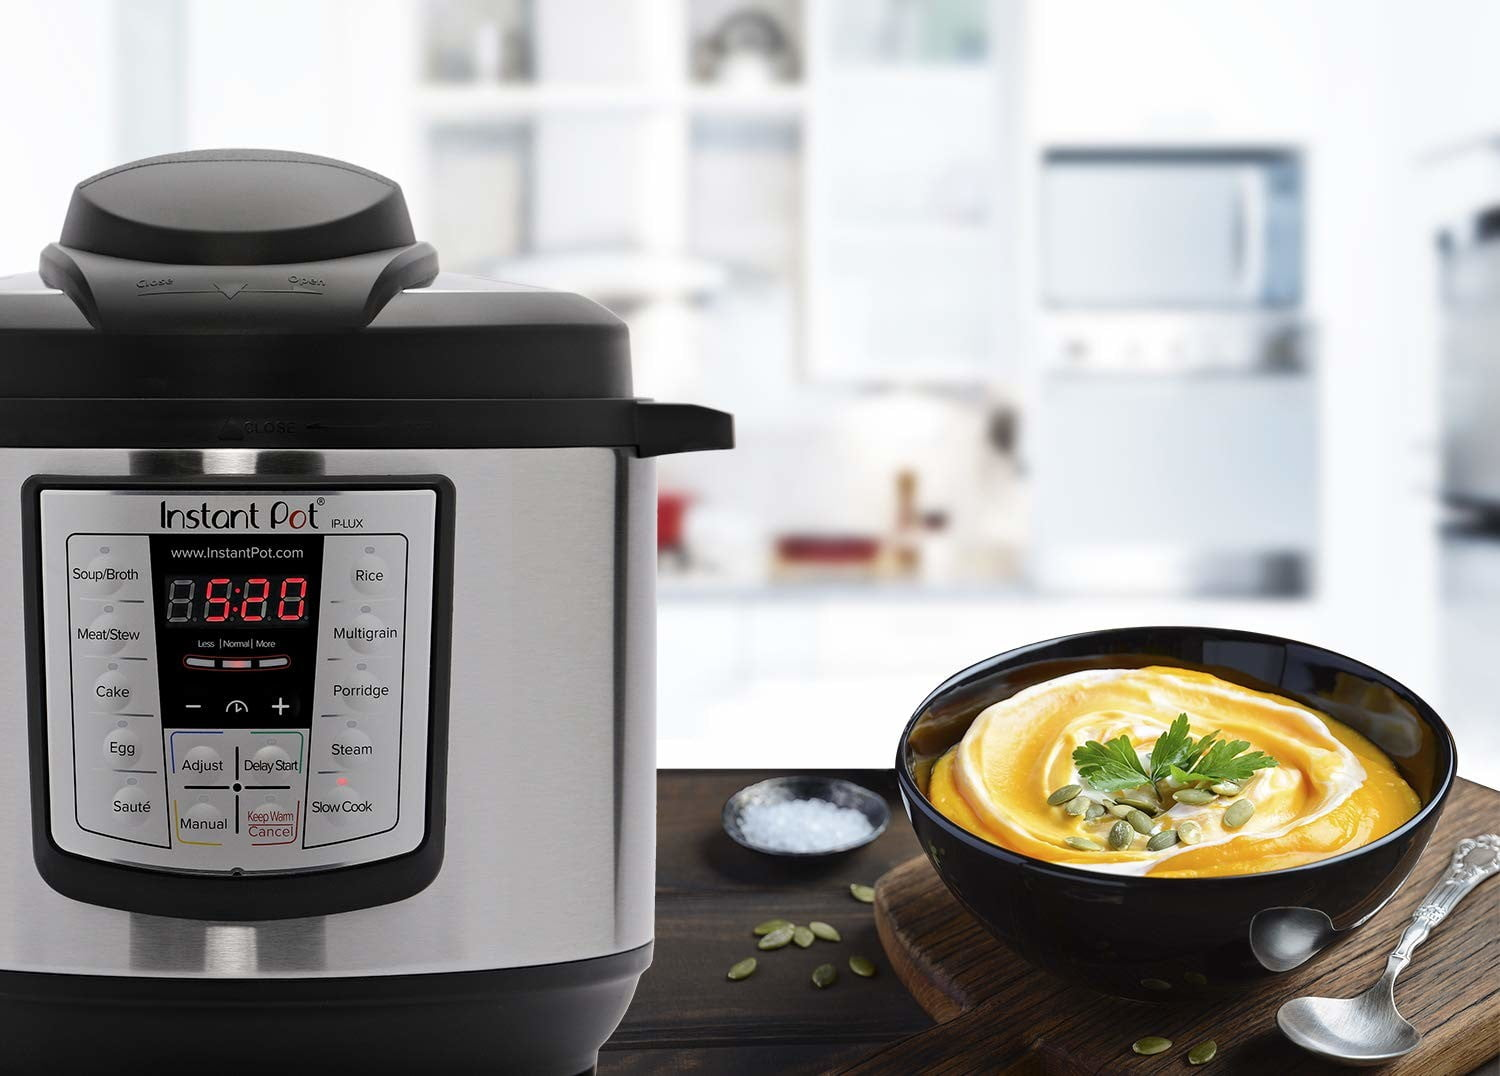 Amazon drops prices on Instant Pot programmable multi-function pressure cookers